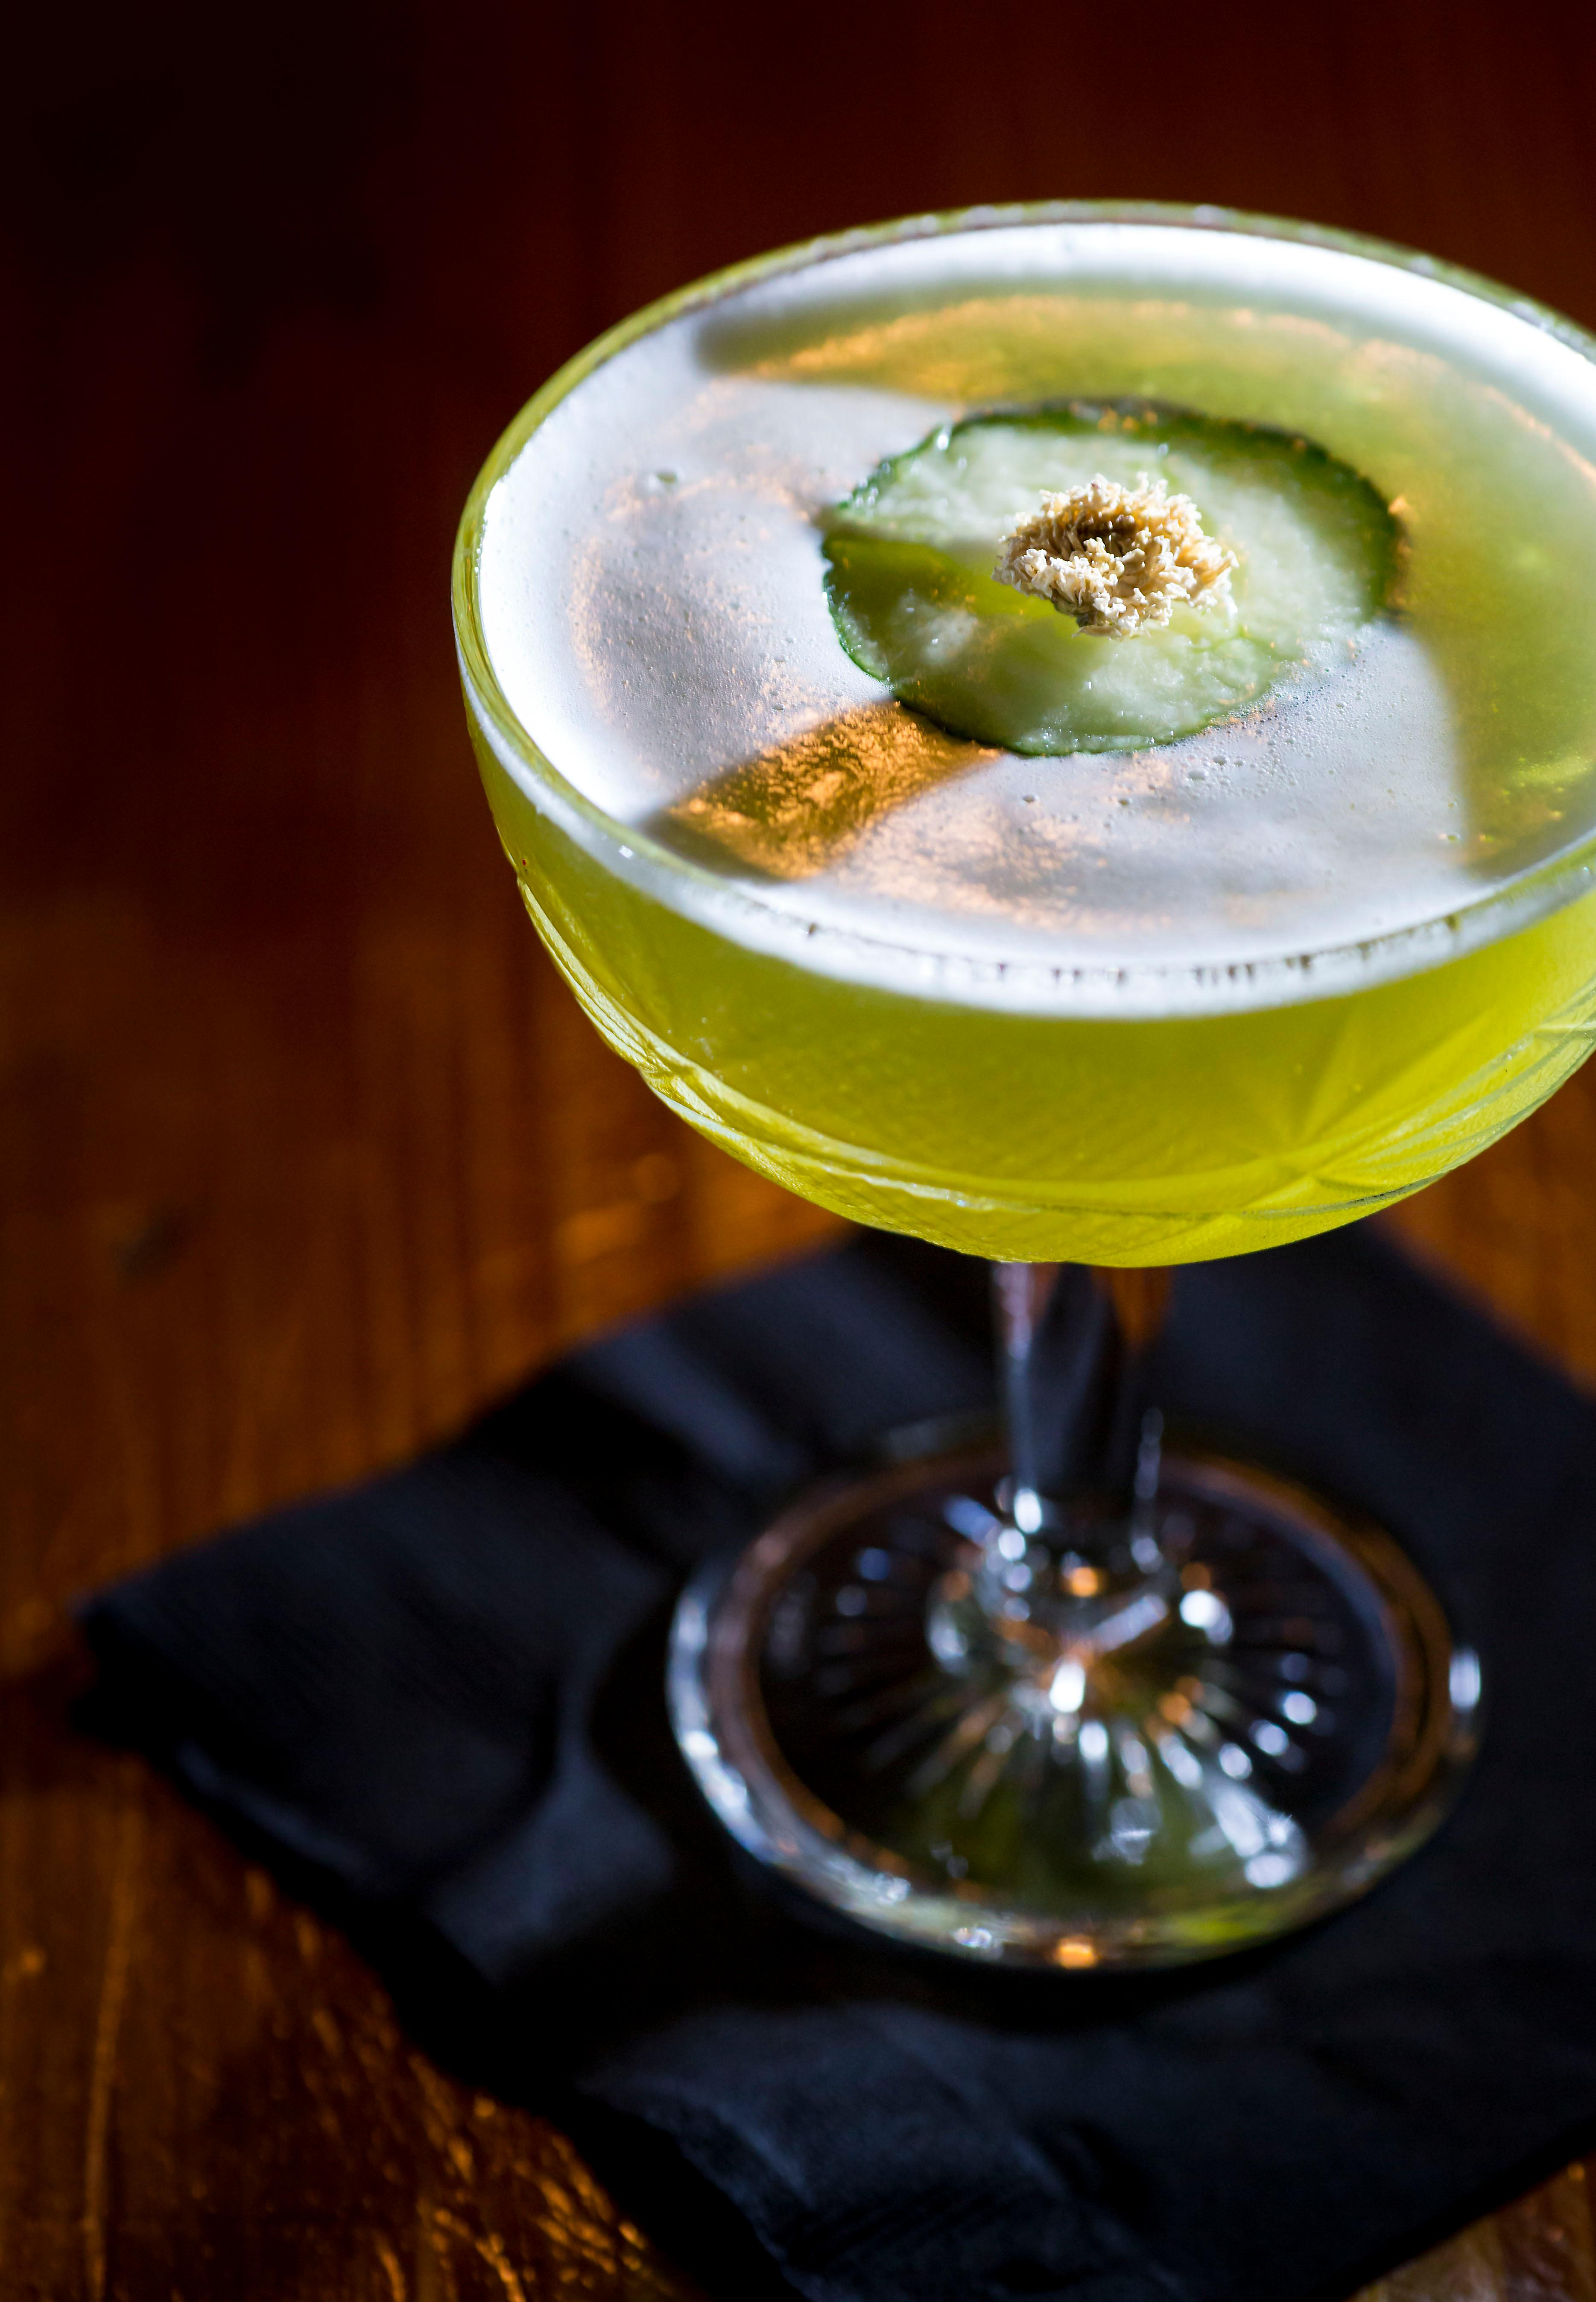 &quot;Ze Lily Pad&quot; - Vodka, green chartreuse, house kiwi syrup, house grapefruit shrub. Garnish is a dried Chrysanthemum flower atop a cucumber to have the look of a Lily Pad.<p></p><p>The Little Tin in Ballard opened in December 2016 and is becoming a quiet the little hot-spot. It's a quieter bar, in comparison to the bumping bar scene in Ballard. Neither a bar nor a restaurant, they instead call themselves a 'goods &amp;amp; apothecary cabinet'! The Little Tin is a place for people to gather around and enjoy delicious snacks and thoughtful, well-made cocktails. Can't be mad at that! (Image: Sy Bean / Seattle Refined)<br></p>